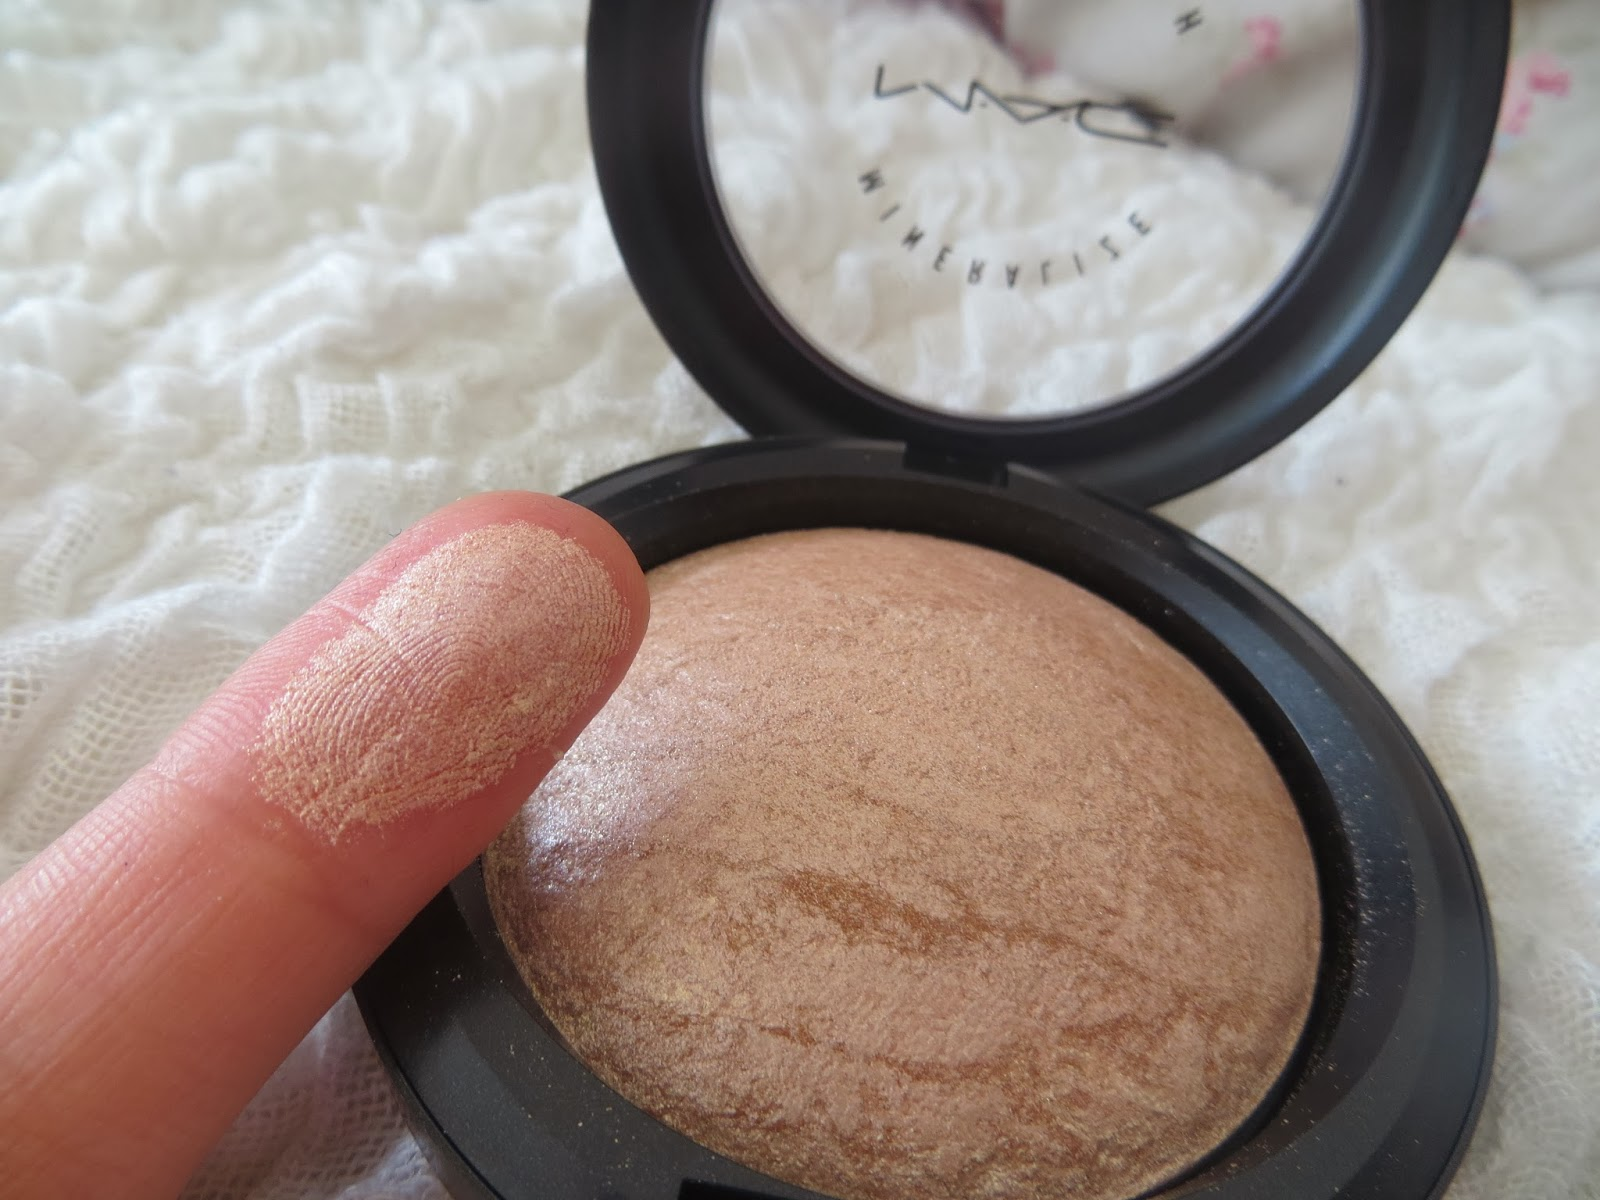 MAC, Review, Mineralize skinfinish, Soft and Gentle, Shimmer, HIghlighter, Bronzer, Blogger, Pretty